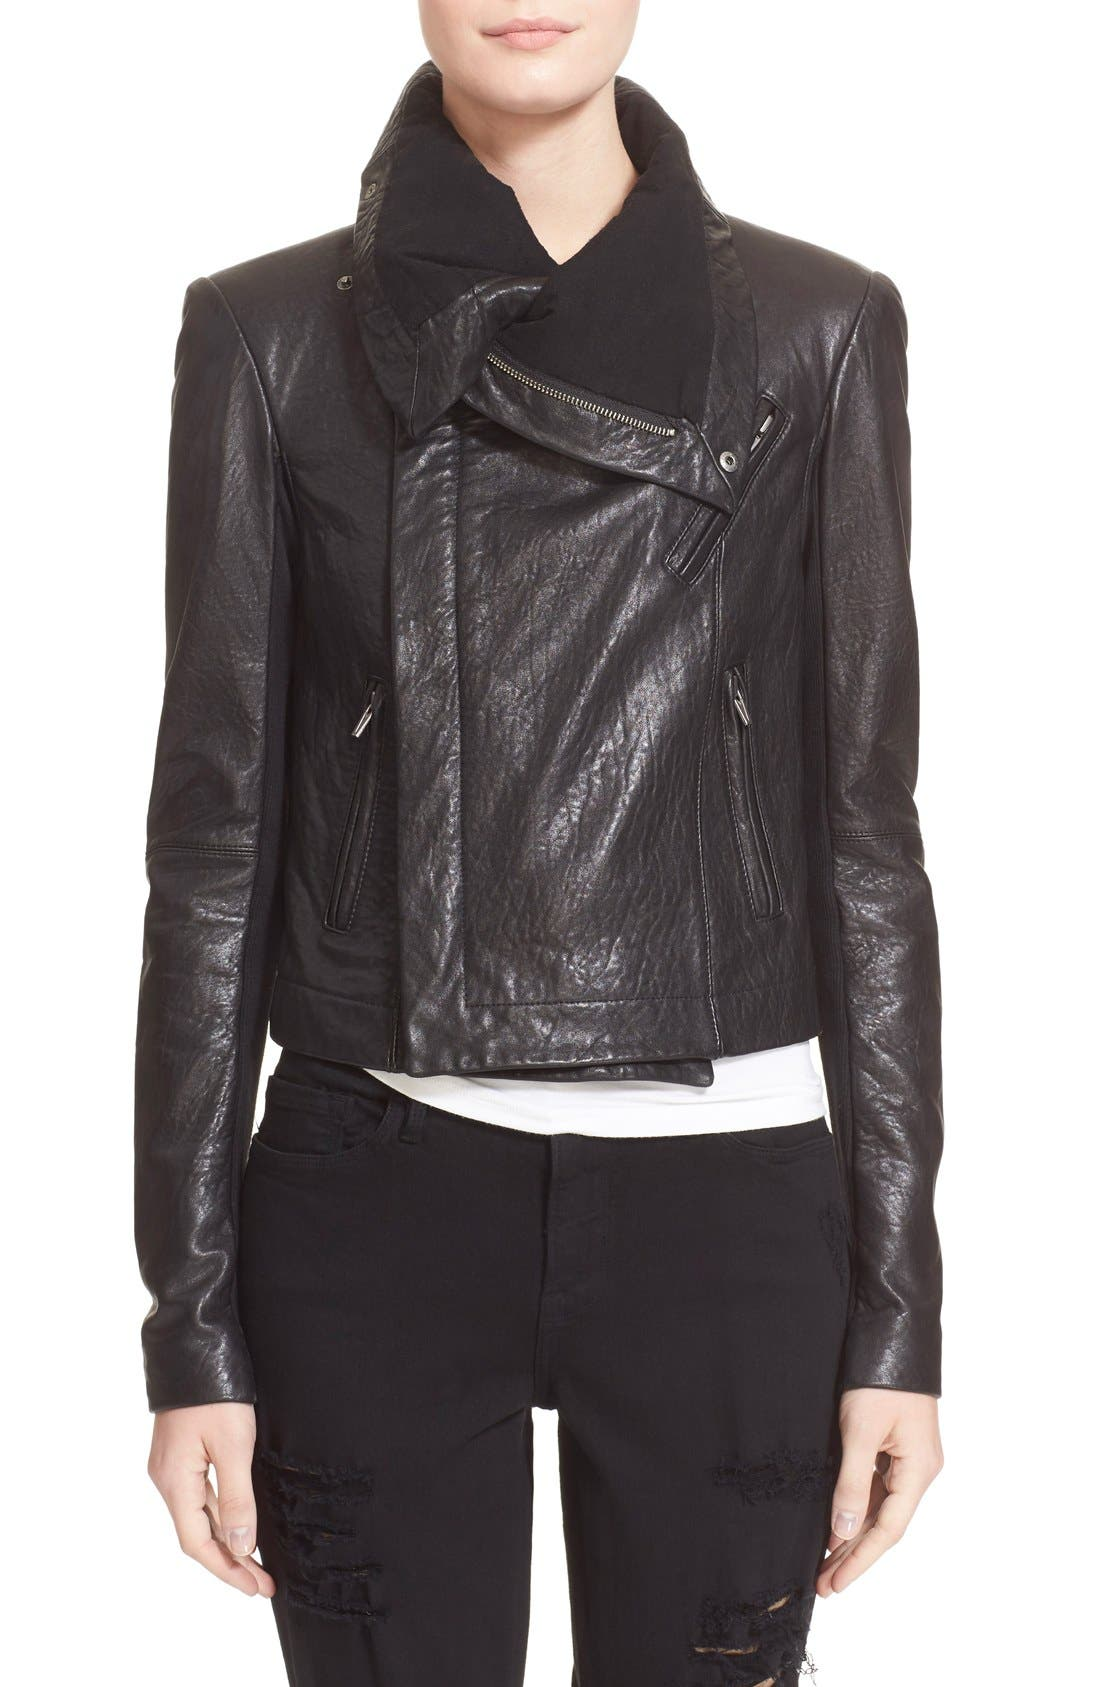 Alternate Image 1 Selected - Veda 'Max Classic' Leather Jacket